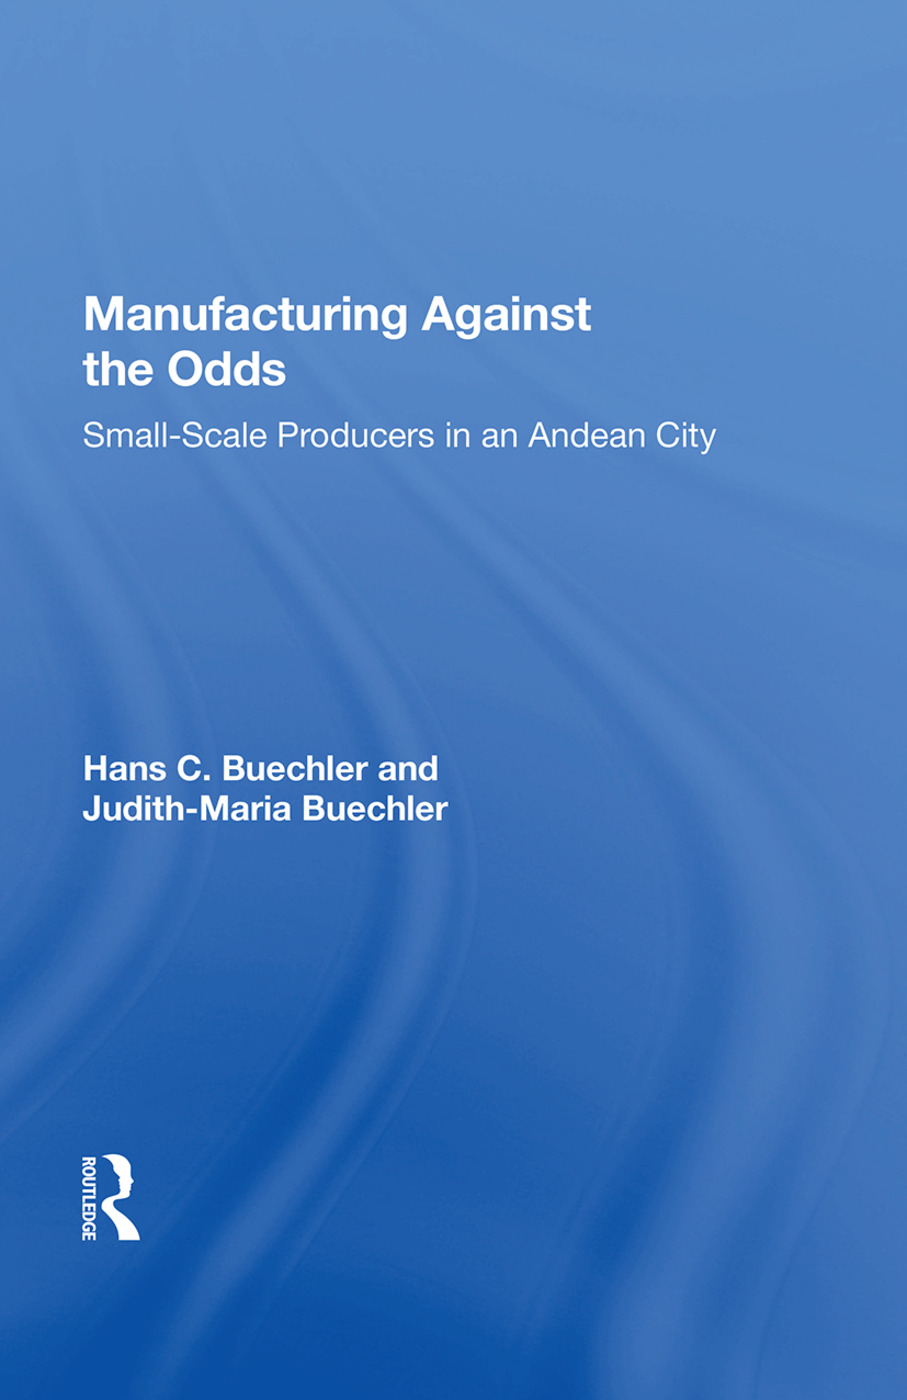 Manufacturing Against The Odds: The Dynamics Of Gender, Class, And Economic Crises Among Small-scale Producers book cover